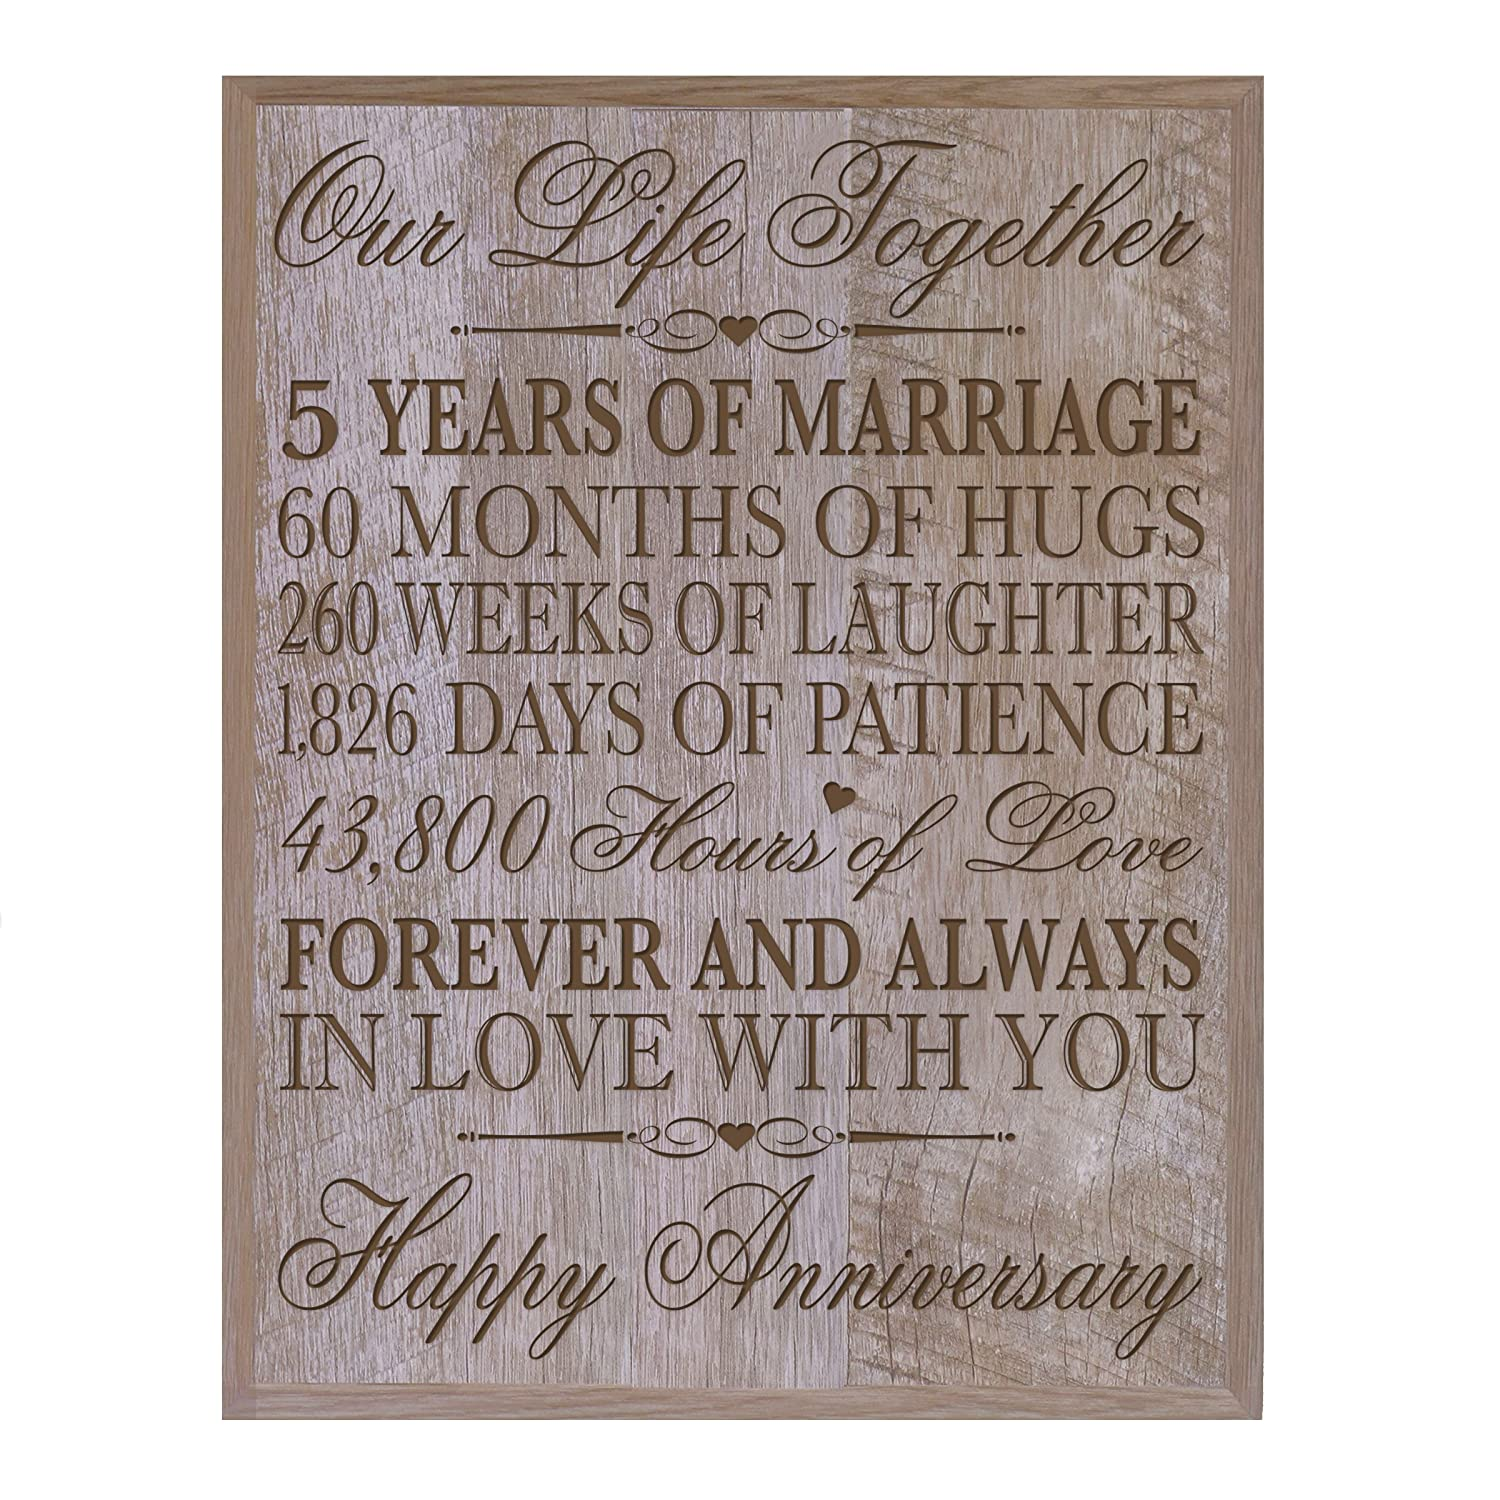 """LifeSong Milestones 5th Wedding Anniversary Wall Plaque Gifts for Couple, 5th Anniversary Gifts for Her,5th Wedding Anniversary Gifts for Him 12 W X 15"""" H Wall Plaque By Walnut 63287"""